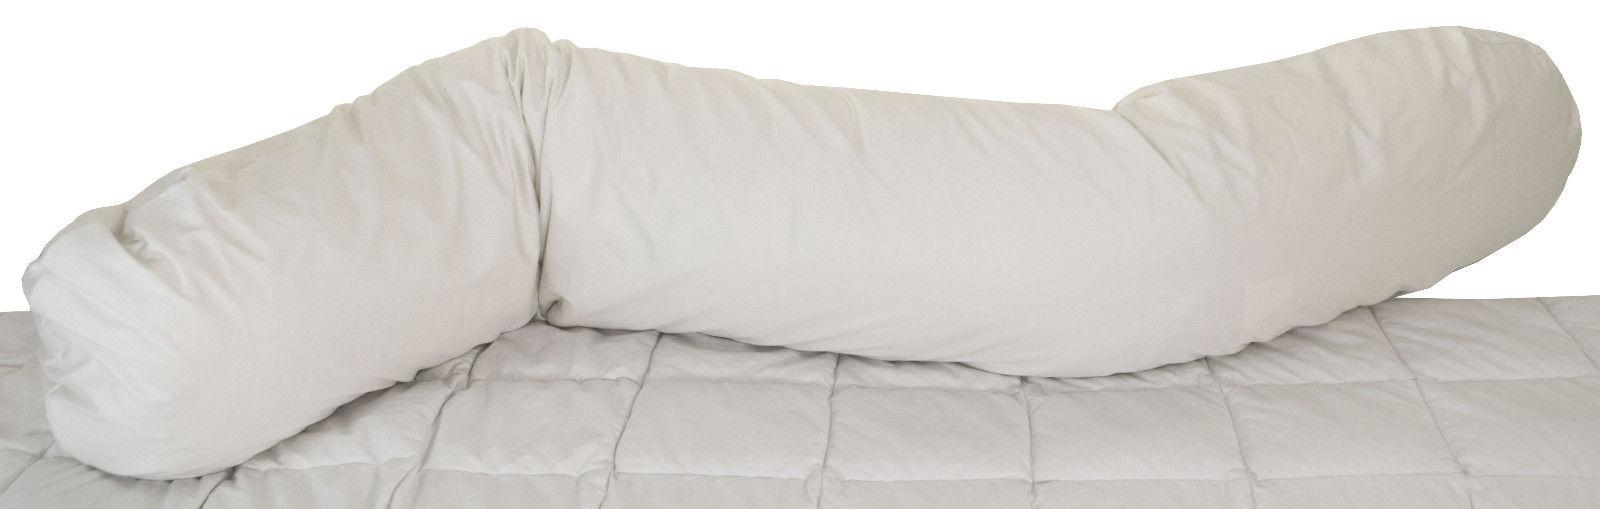 Sleeping Cover, Cotton fitted pillowcase,